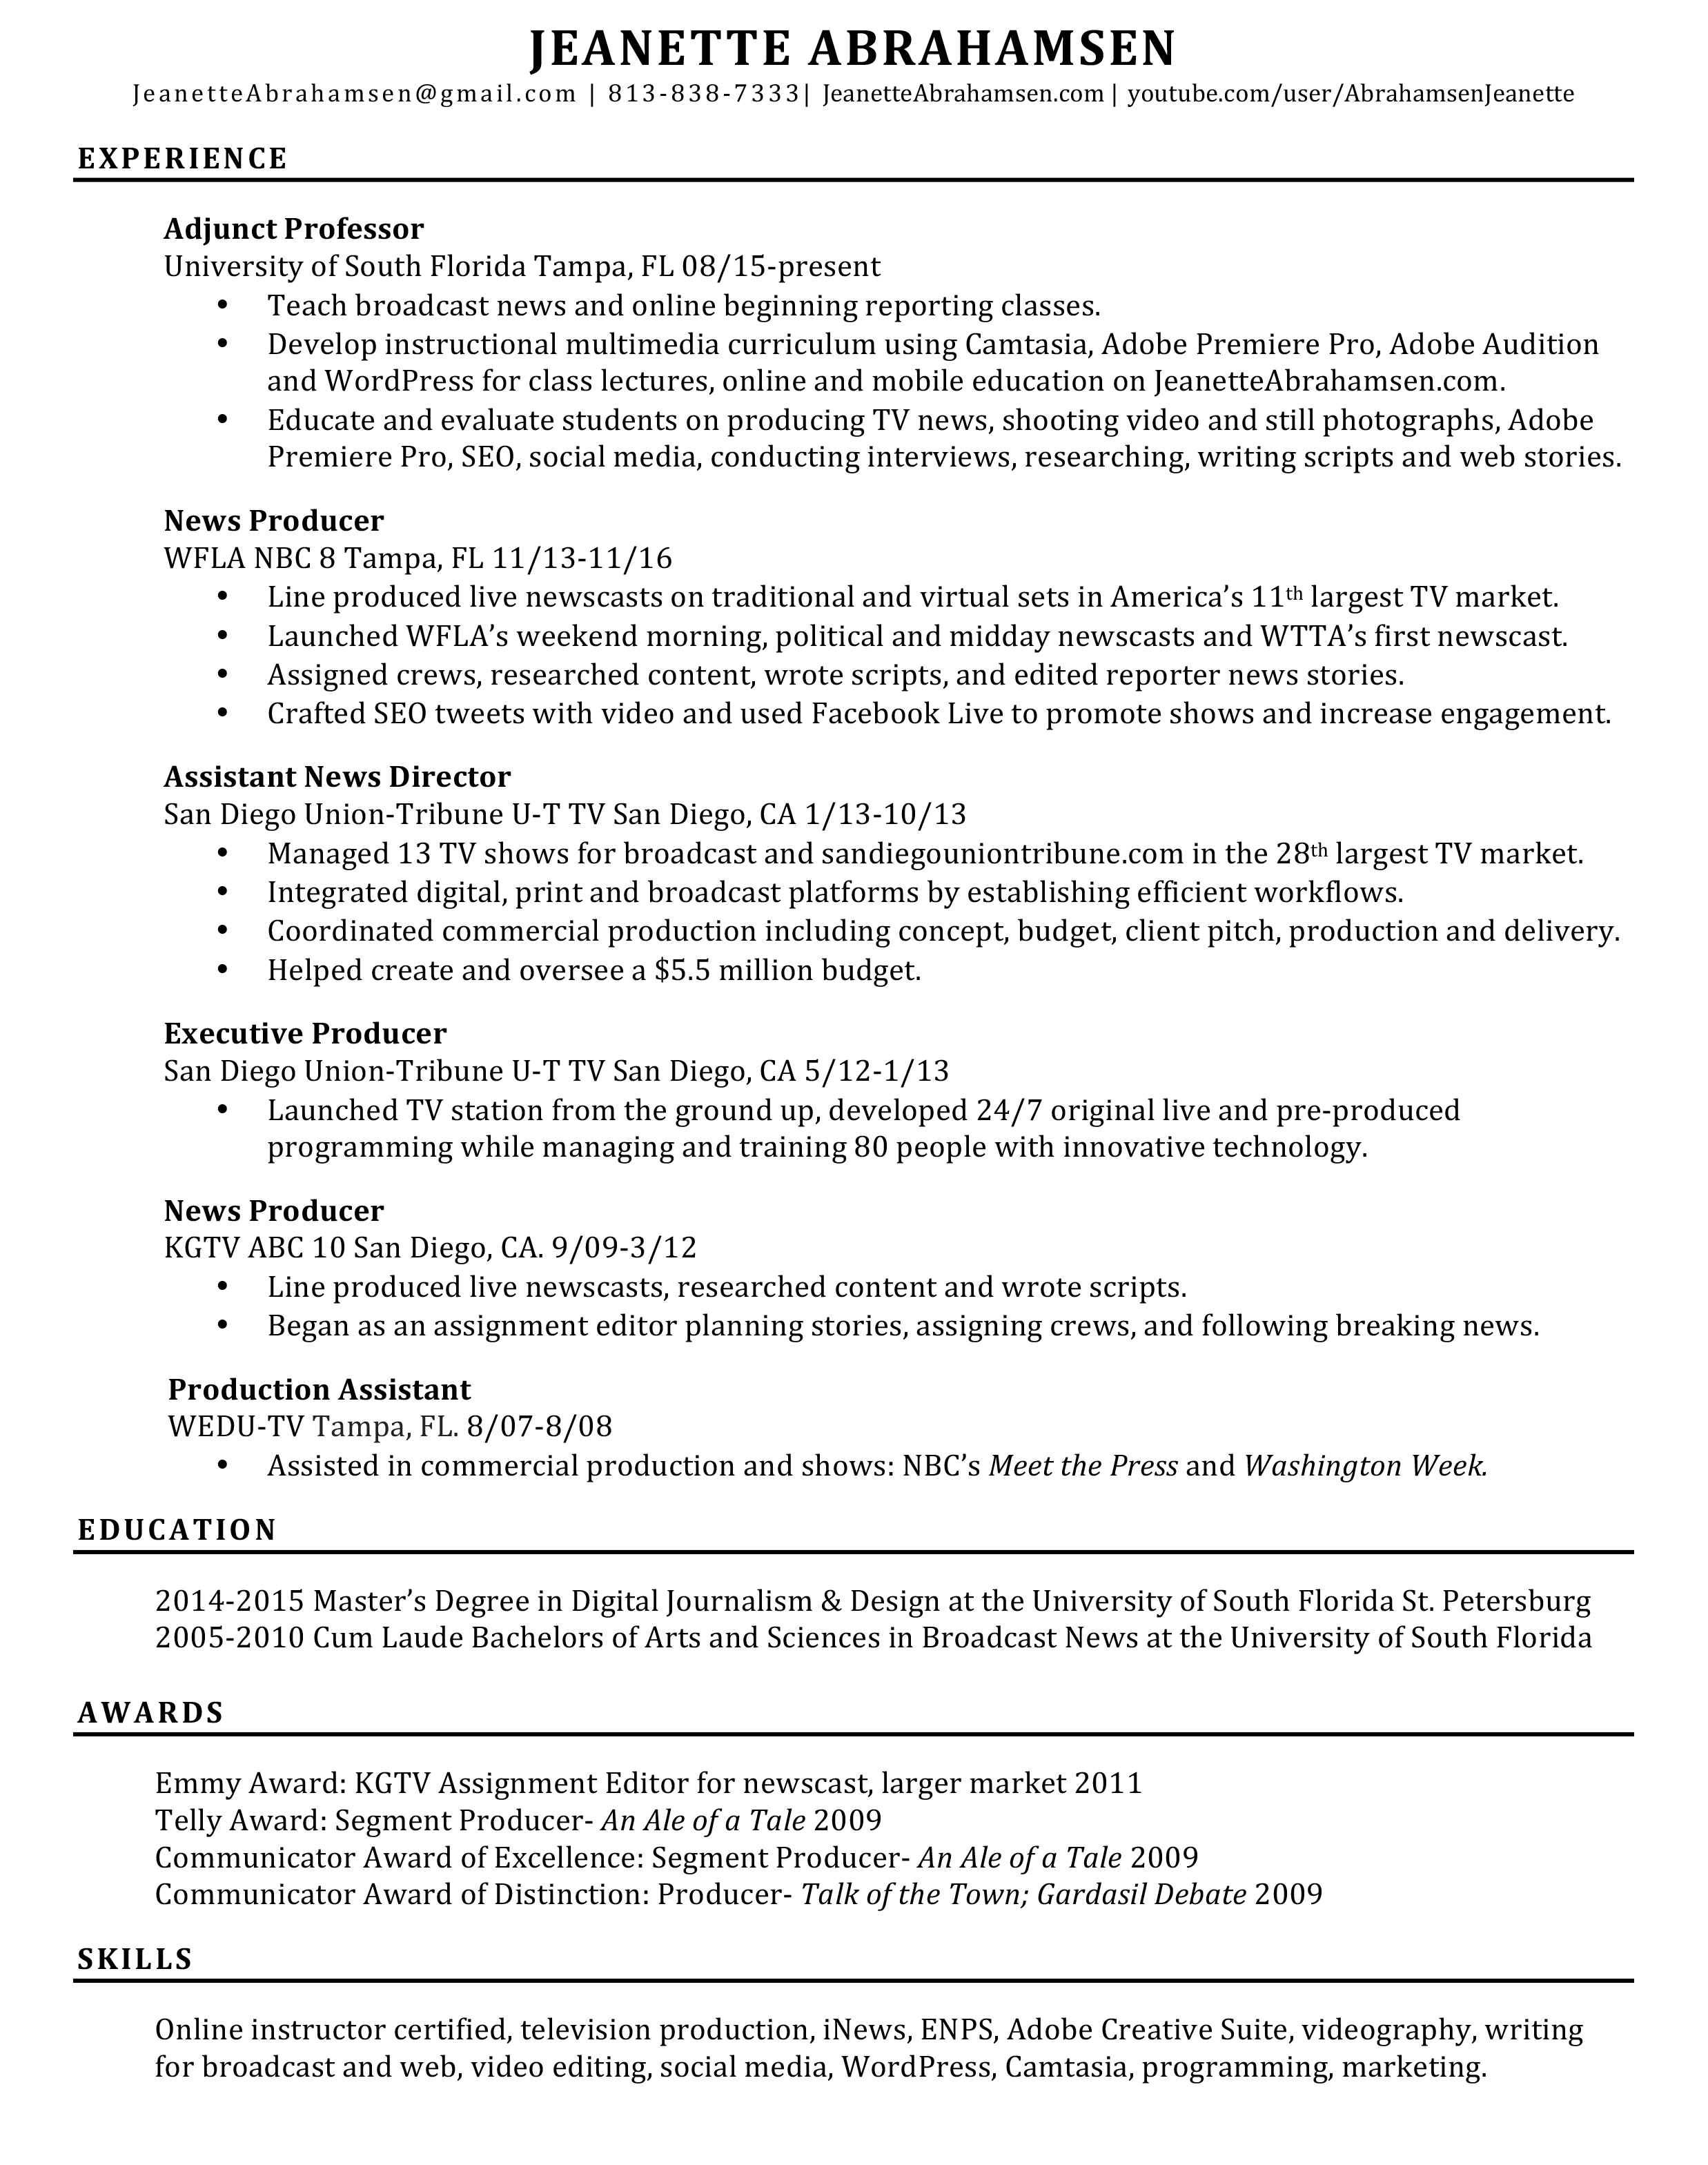 Multimedia Editor Cover Letter - sarahepps.com -